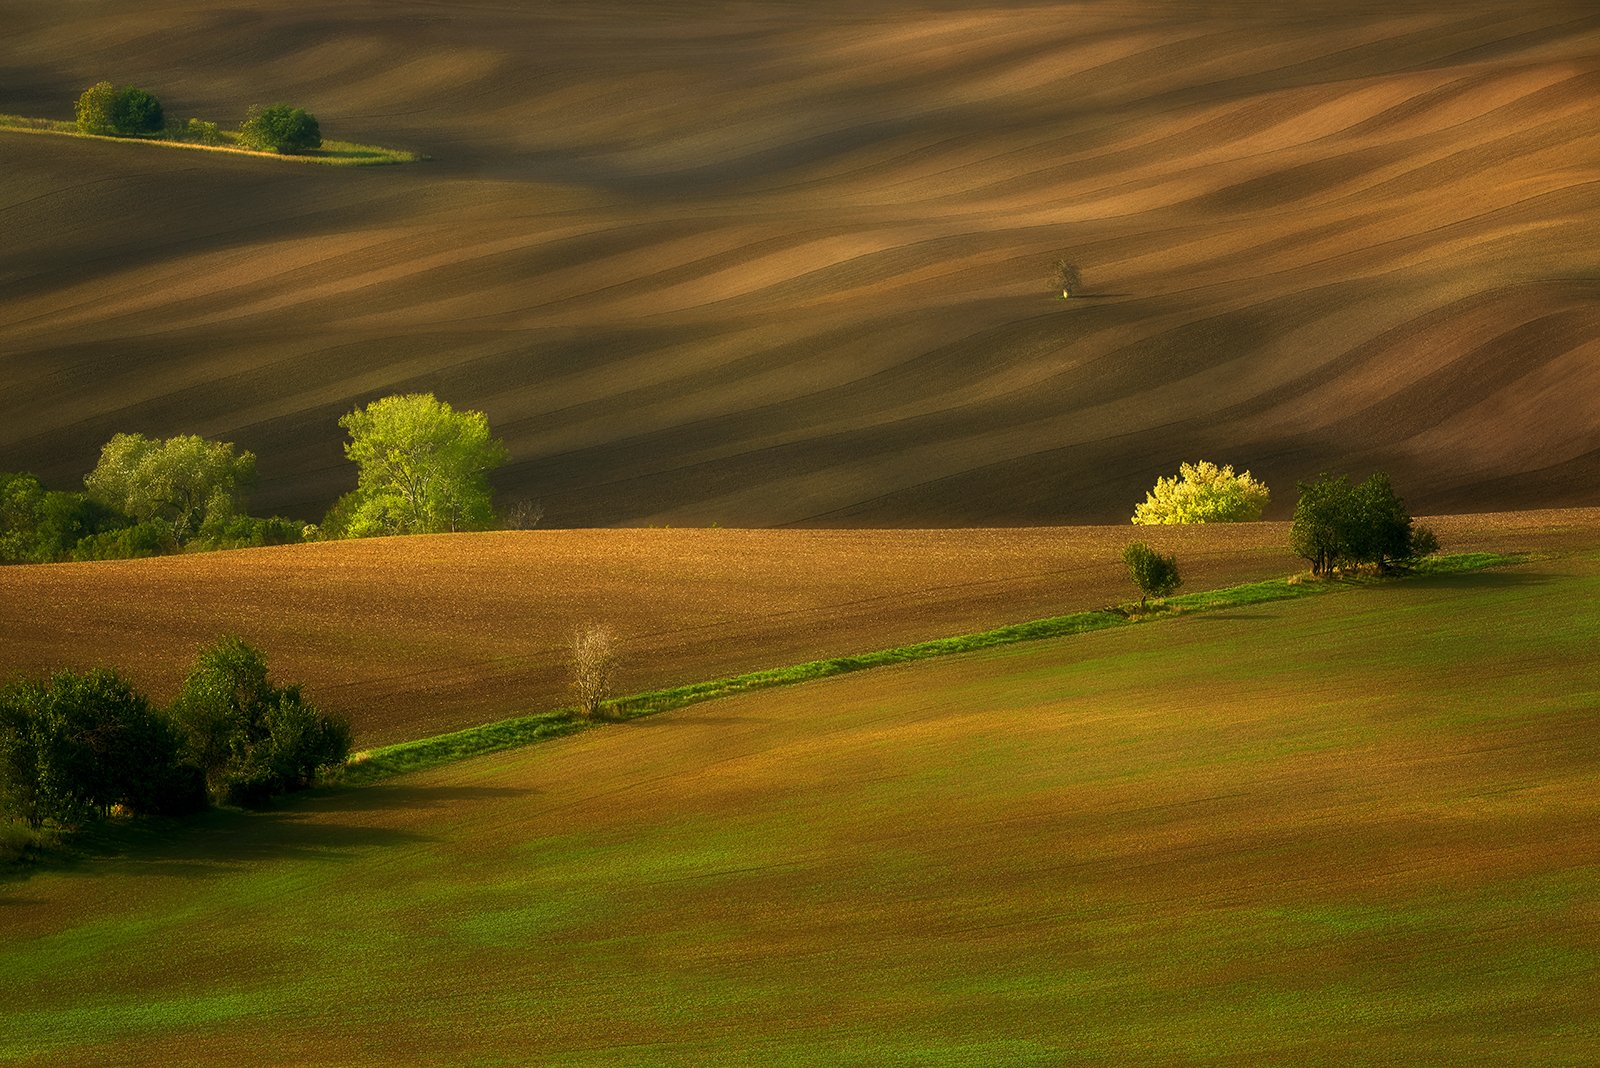 agriculture,background,beautiful,countryside,czech republic,environment,farm,field,grass,green,hill,hills,house,land,landscape,meadow,moravia,nature,outdoor,plant,rolling,rural,scenery,summer,travel,view, Jan Siemiński